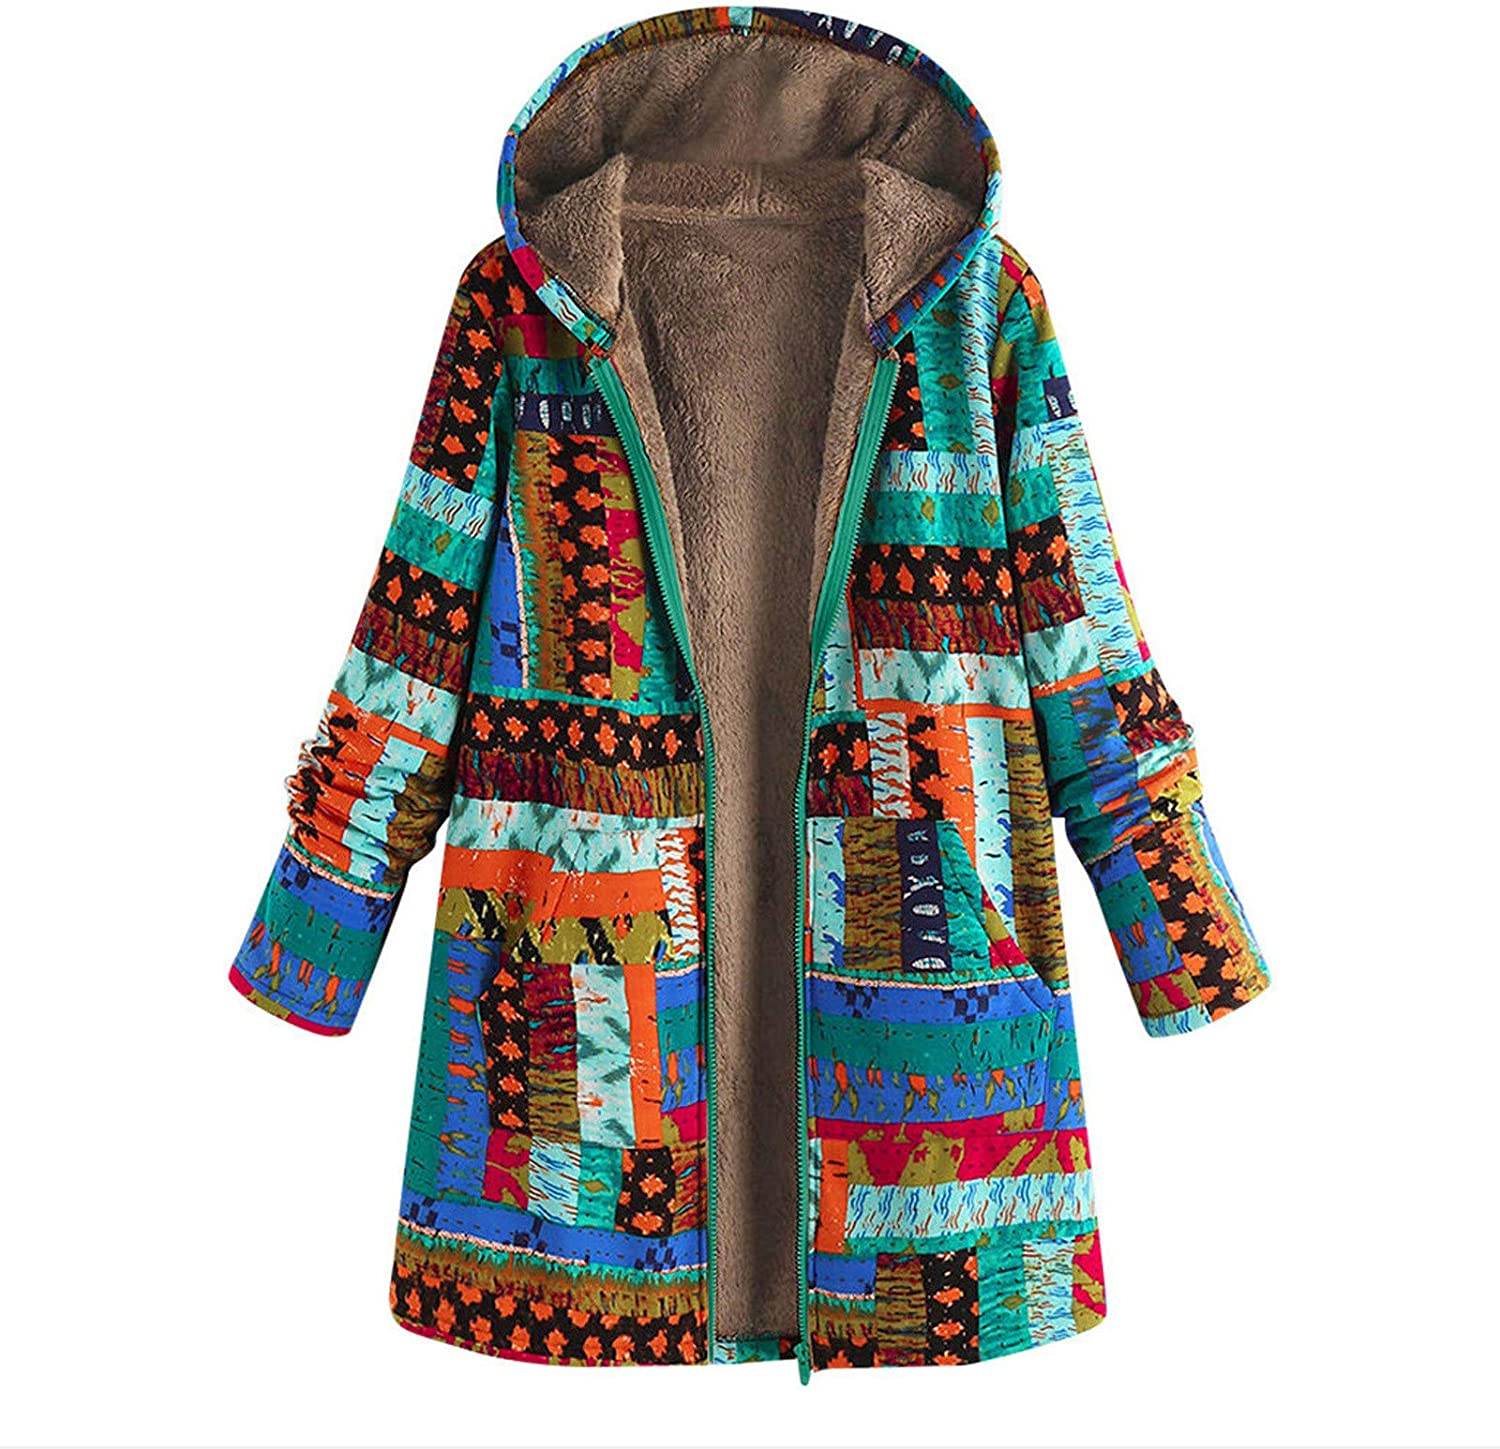 ZSBAYU Coats for Women Winter Fashion Plus Size Casual Jackets Boho Multicolored Warm Vintage Coats with Hood and Pocket